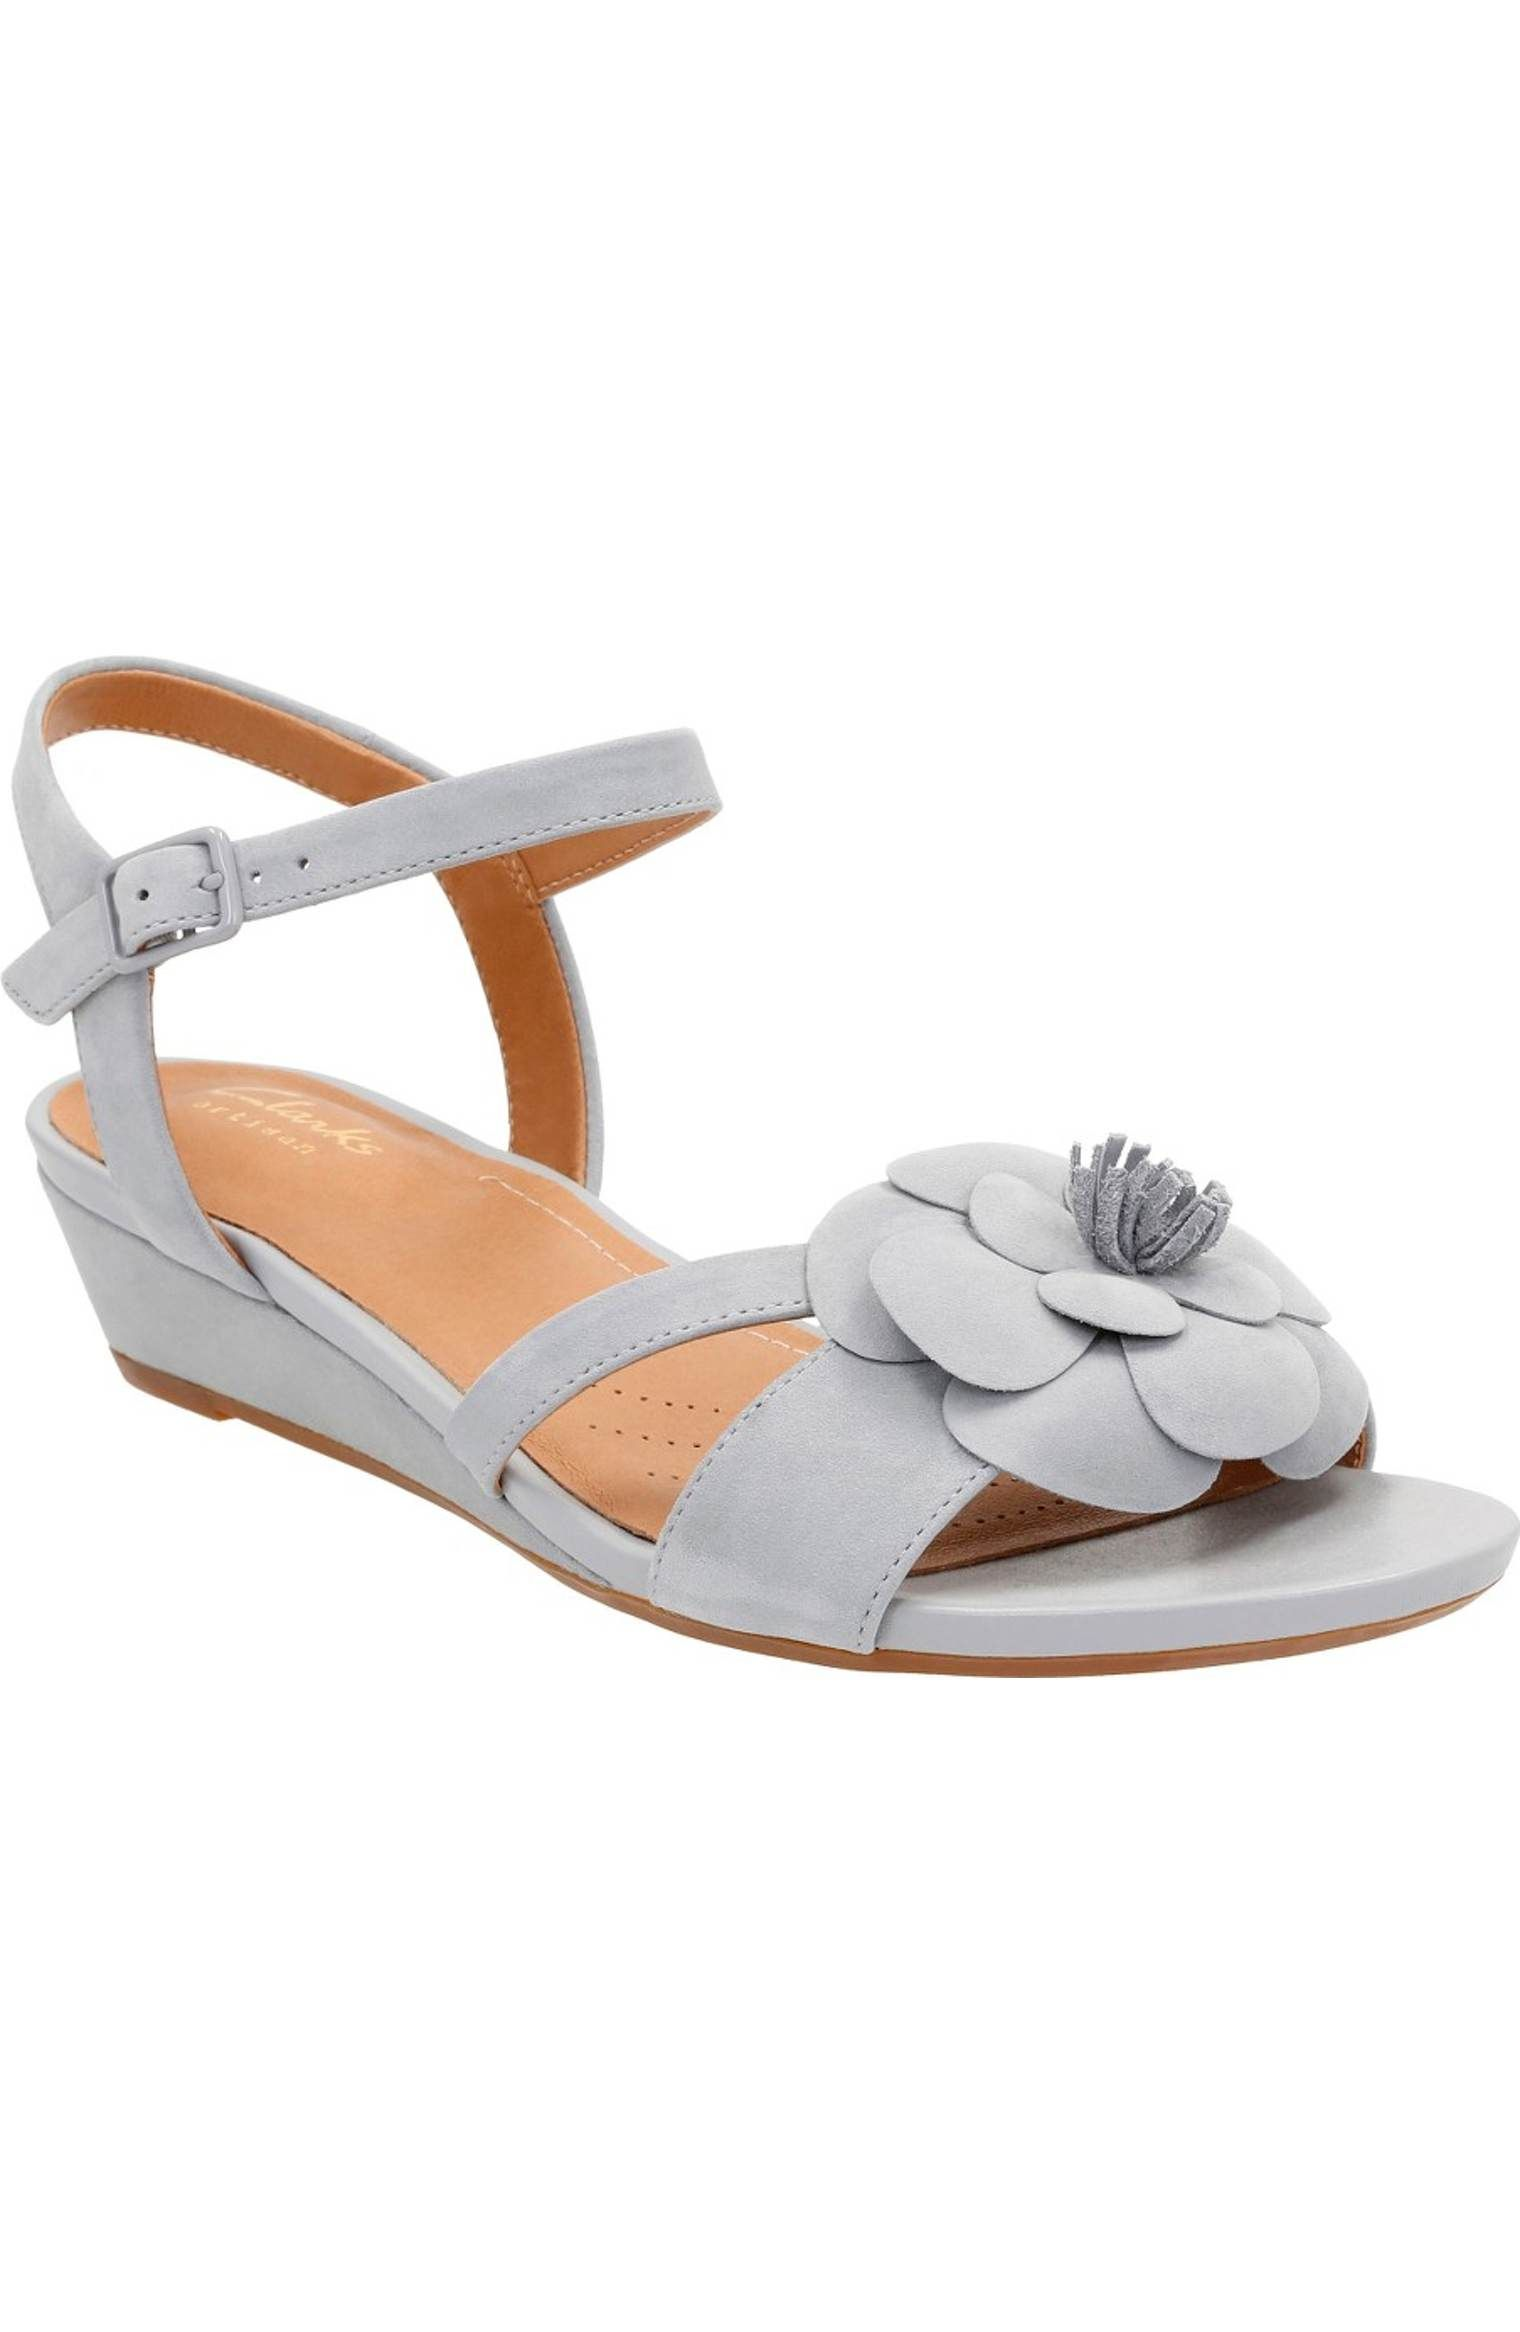 be3a5f7728fd Main Image - Clarks® Parram Stella Flower Wedge Sandal (Women)